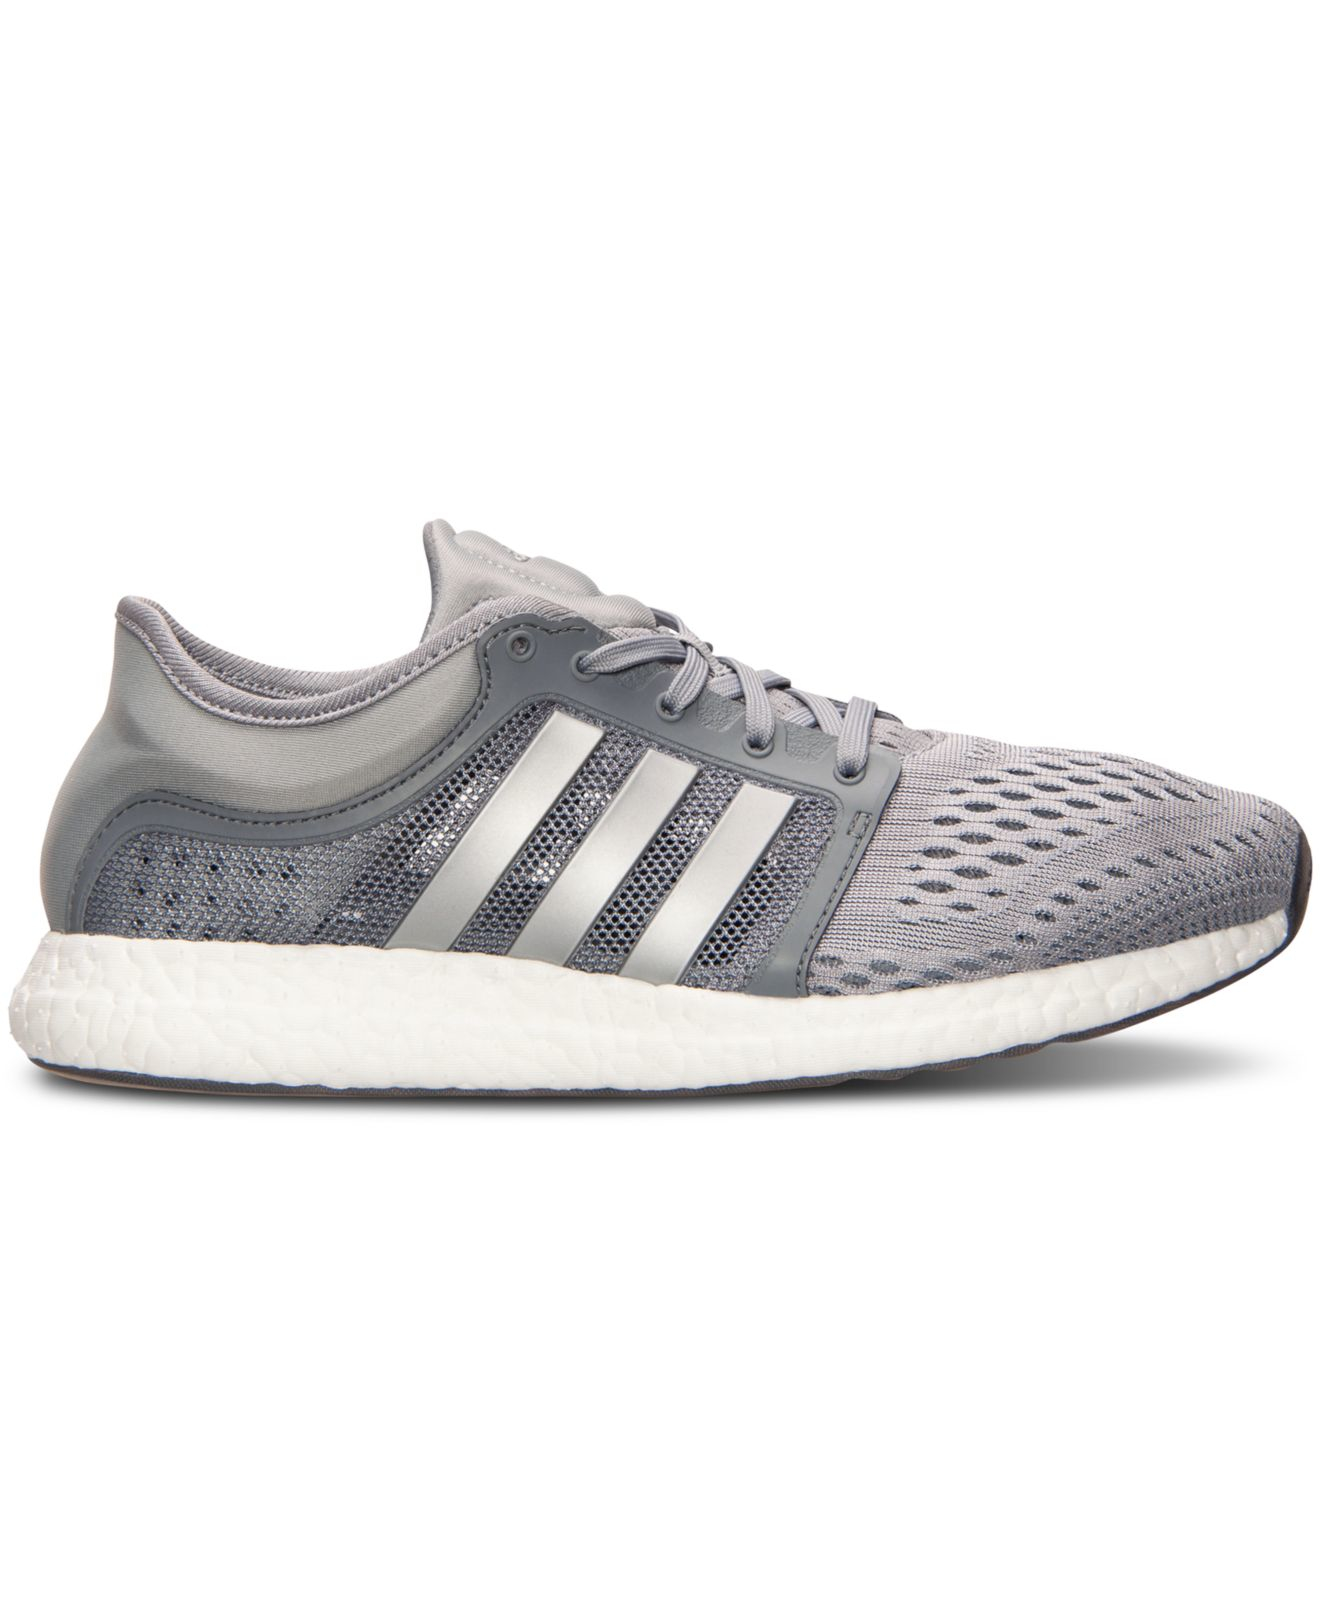 Lyst - adidas Originals Men s Rocket Boost Running Sneakers From ... 9b08280fe